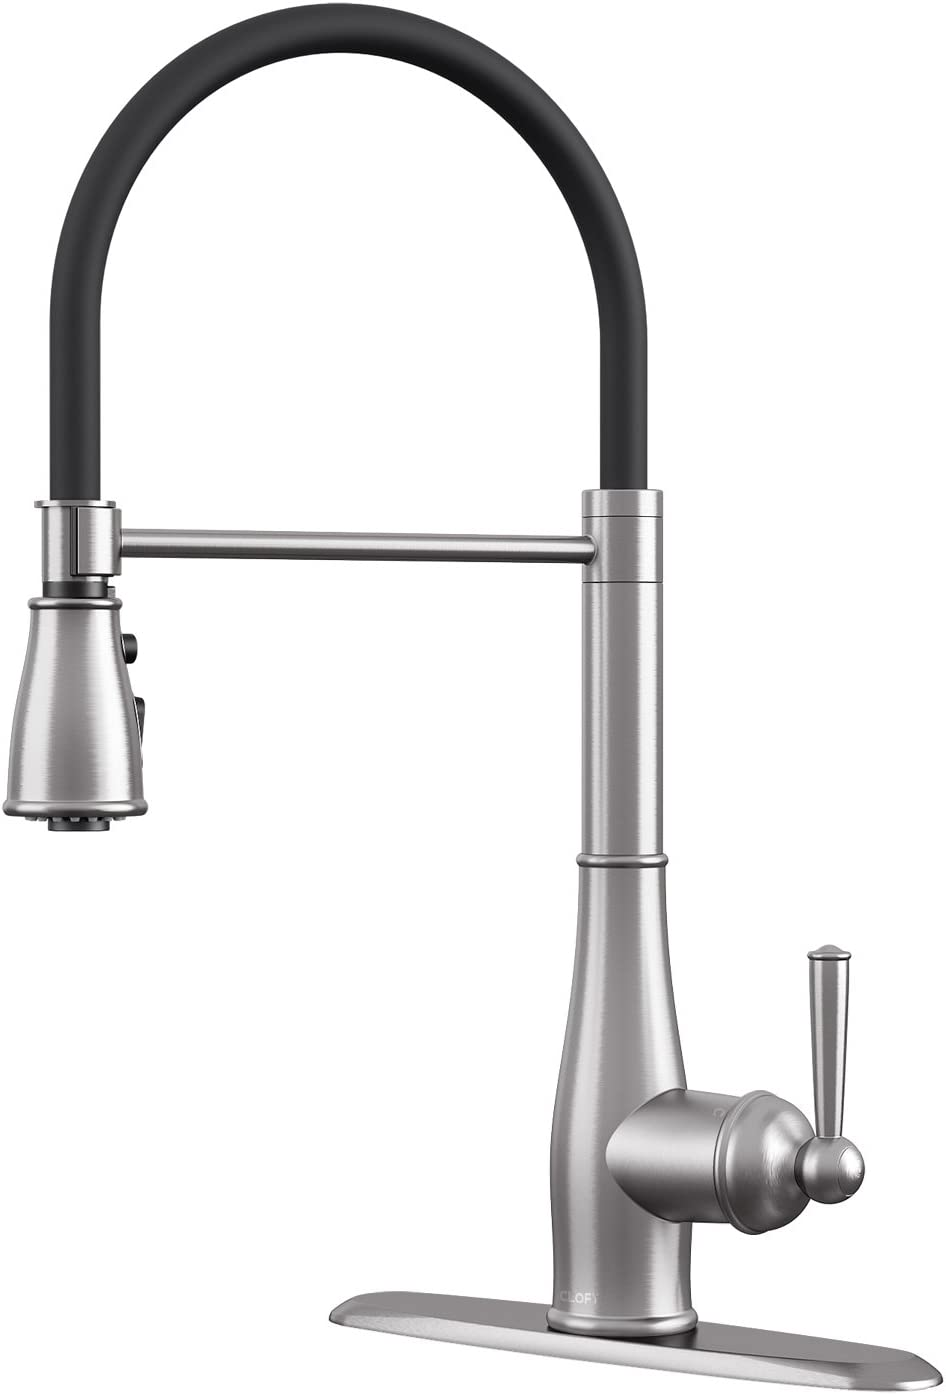 CLOFY Kitchen Faucet, kitchen faucets with pull down sprayer, kitchen sink faucet, Single Handle – Anti-Stain Brushed Nickel, DIY Installation